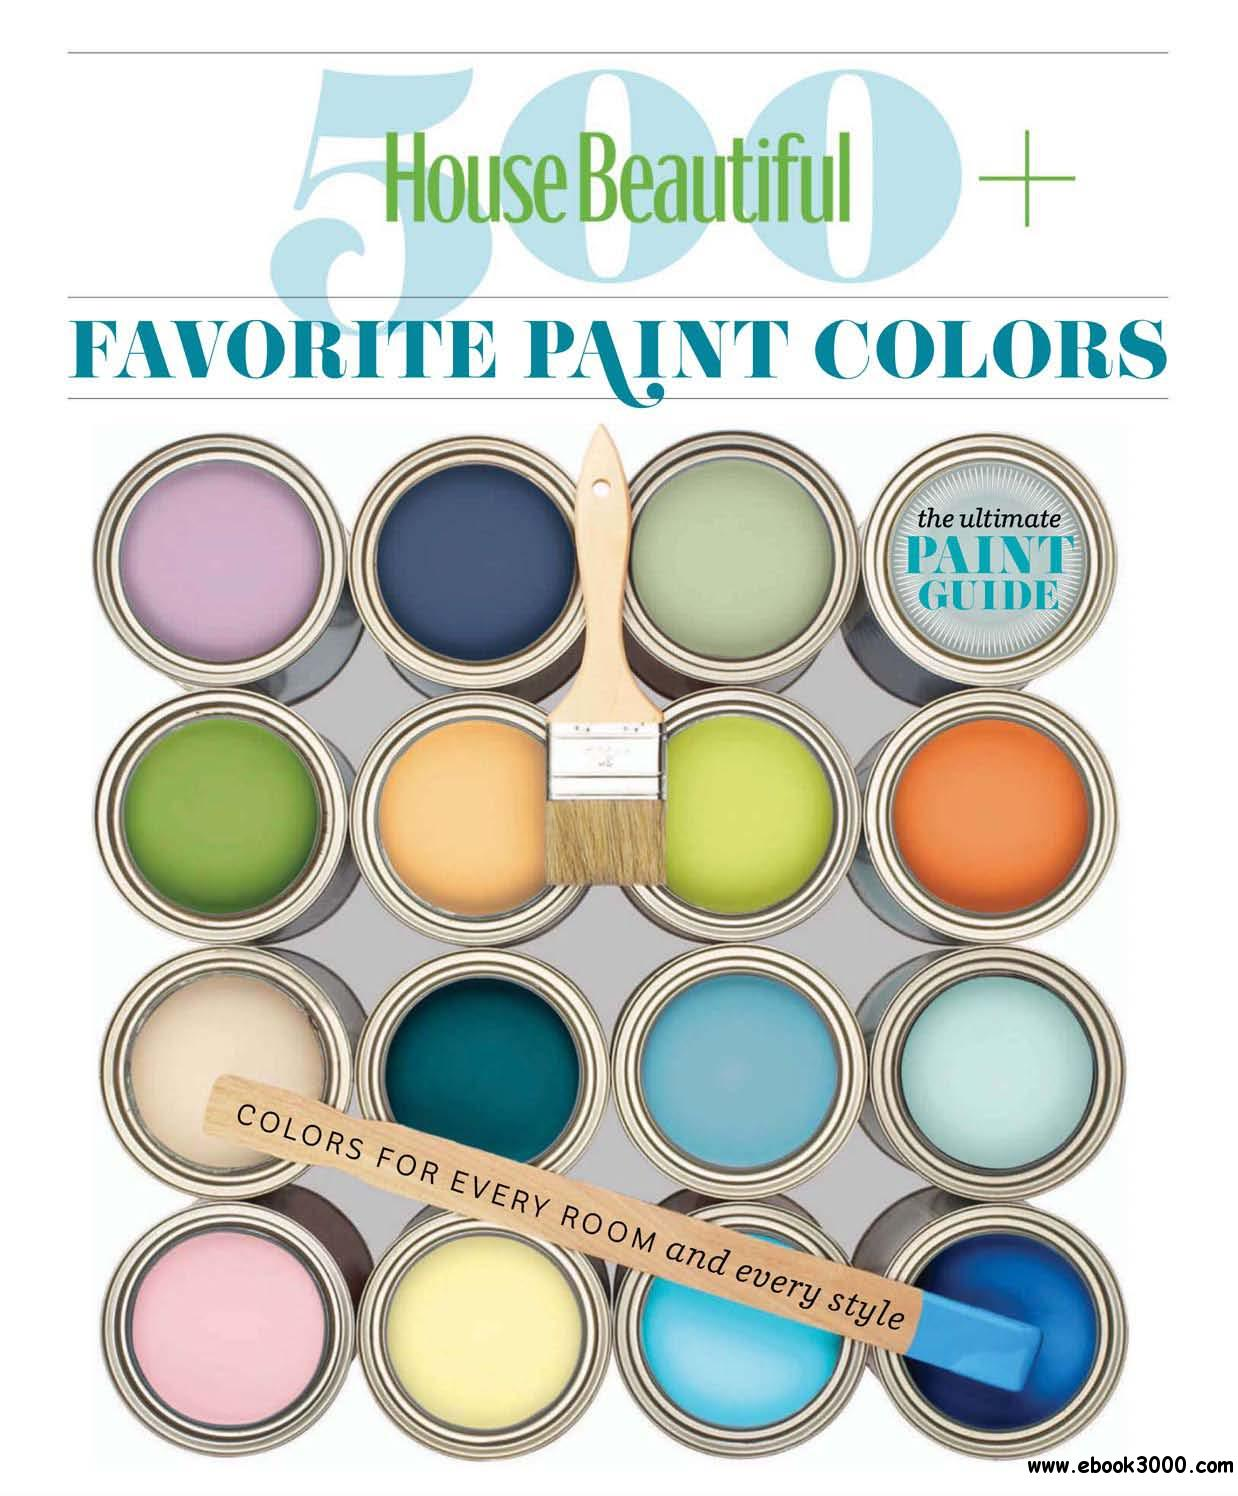 House Beautiful 500+ Favorite Paint Colors Magazine free download